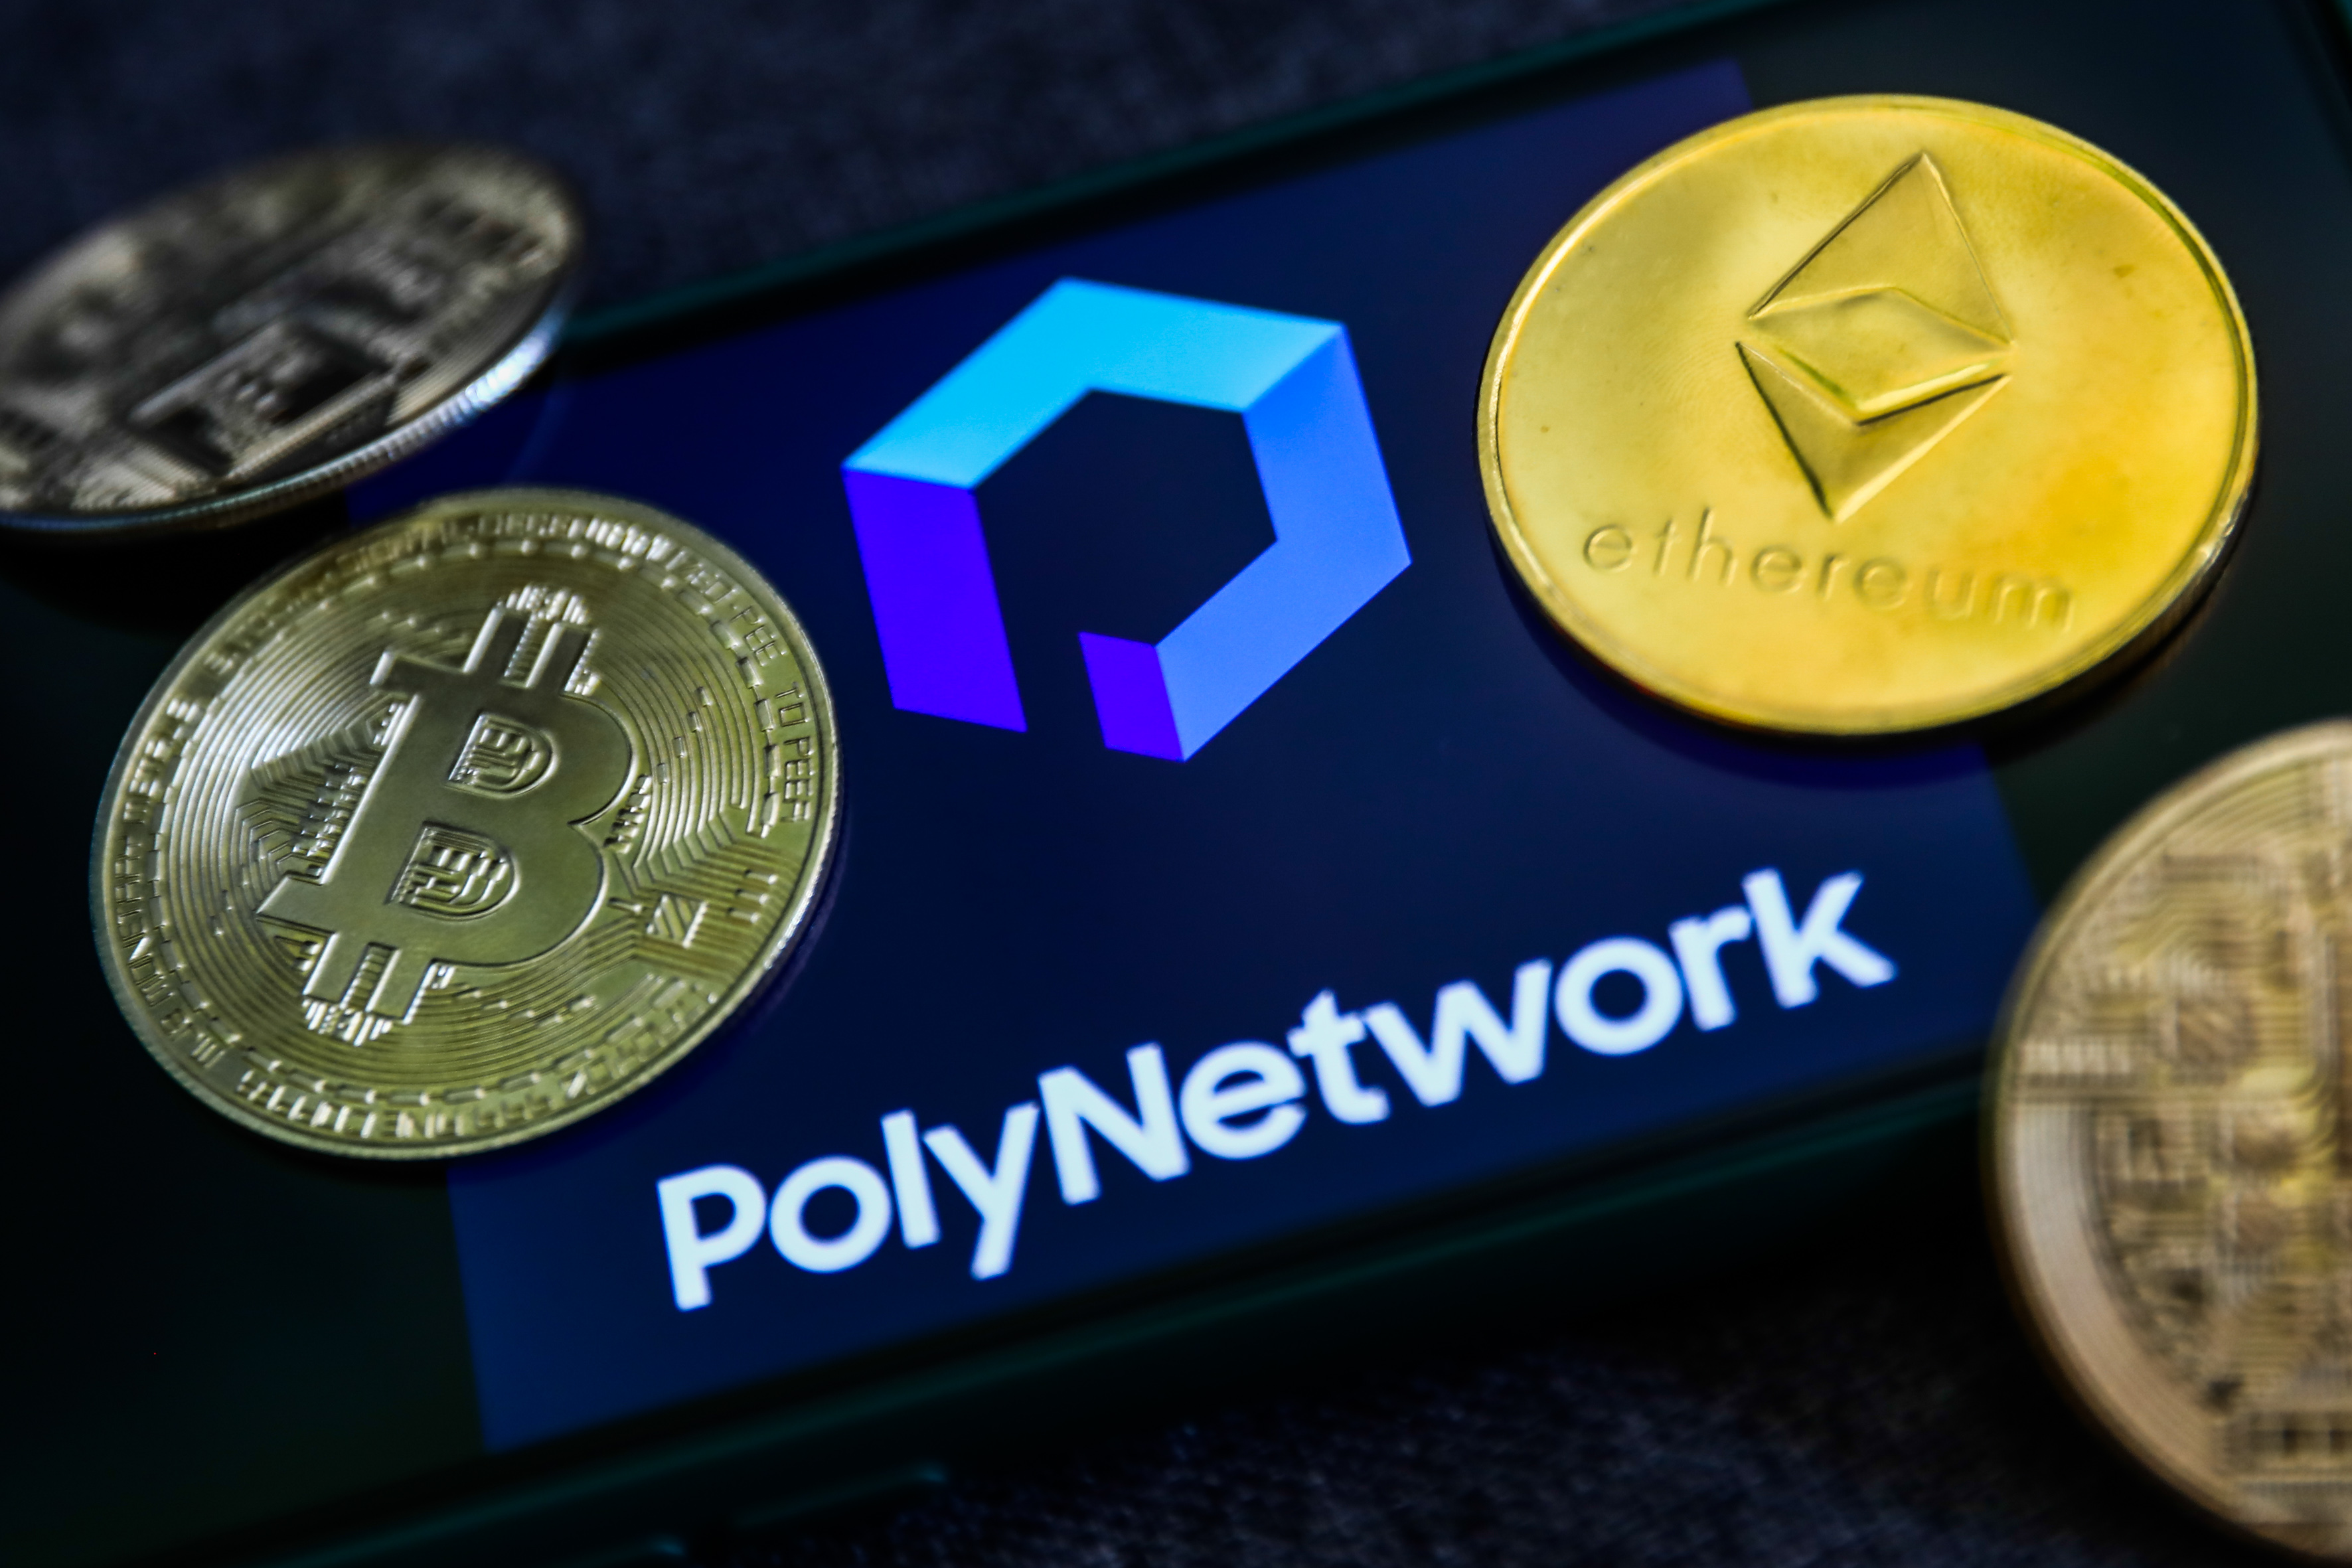 Poly Network says it has recovered all $610 million it lost in cryptocurrency heist